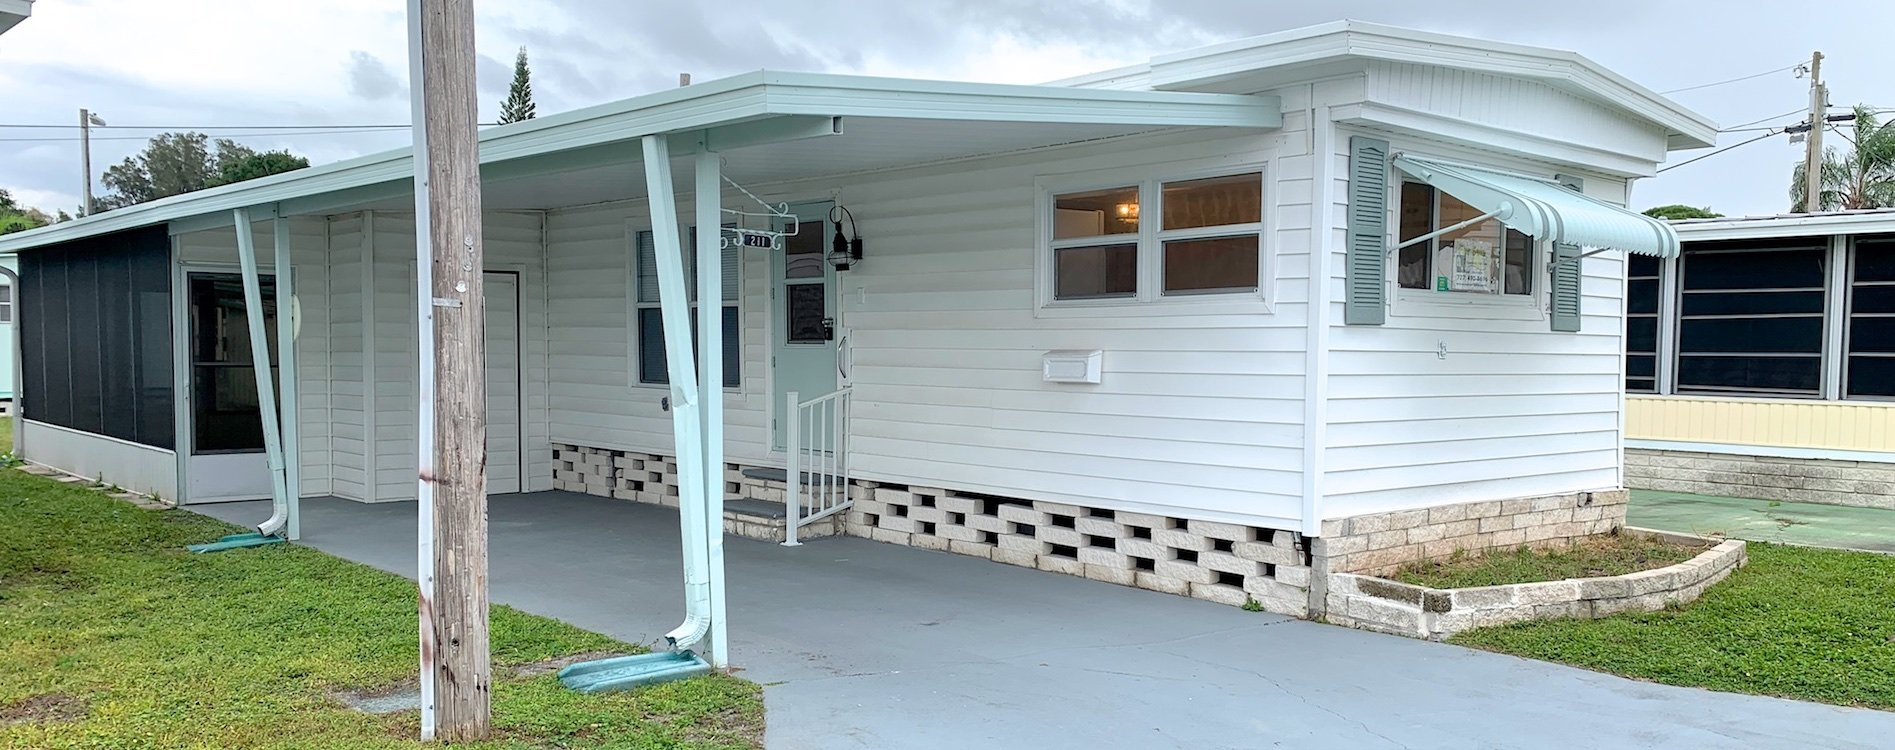 Mobile Home For Sale   Saint Petersburg, FL   Isle Of ...